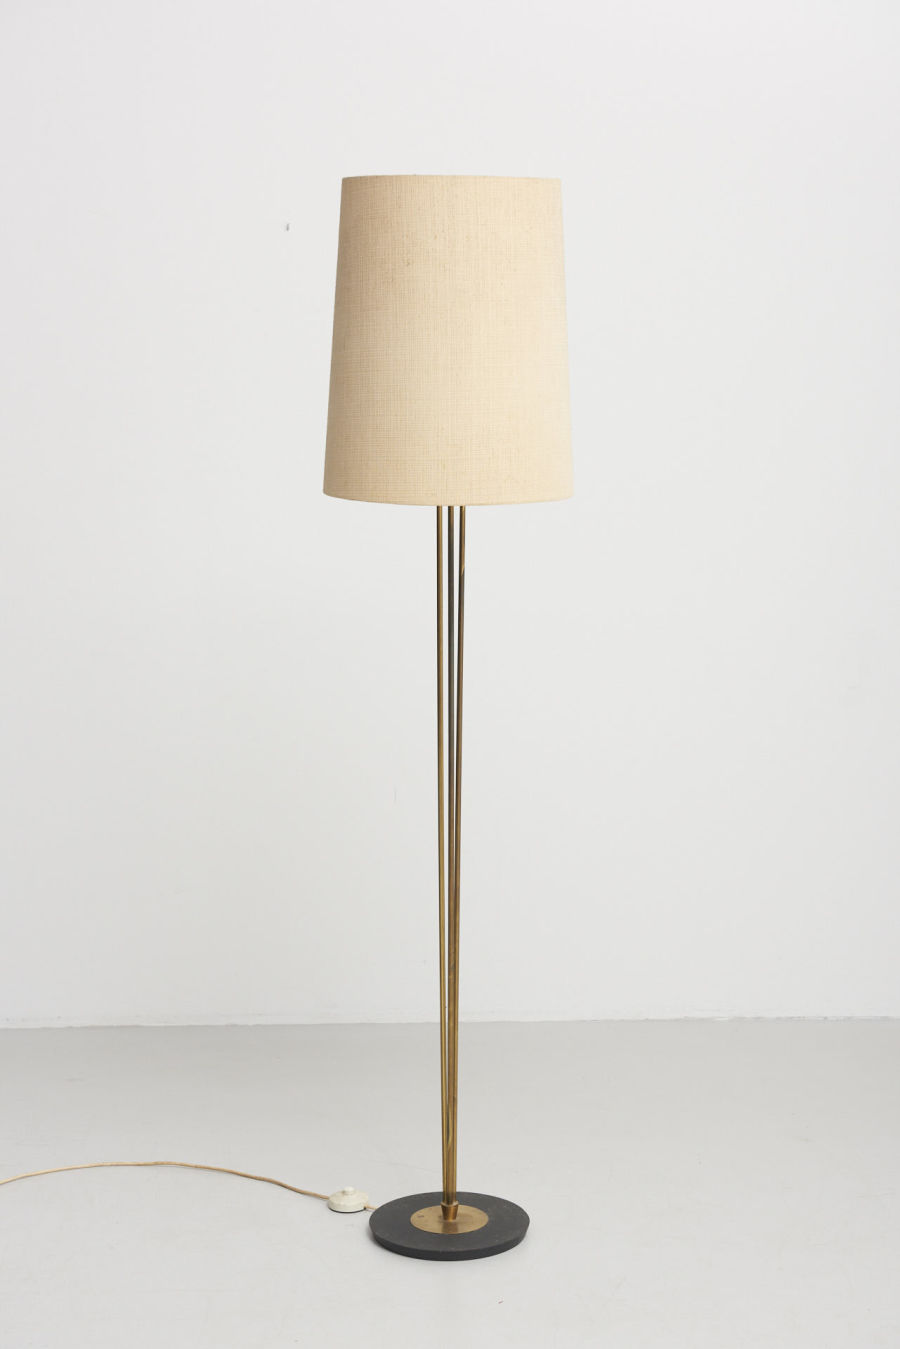 modestfurniture-vintage-2004-floor-lamp-brass-1950s04